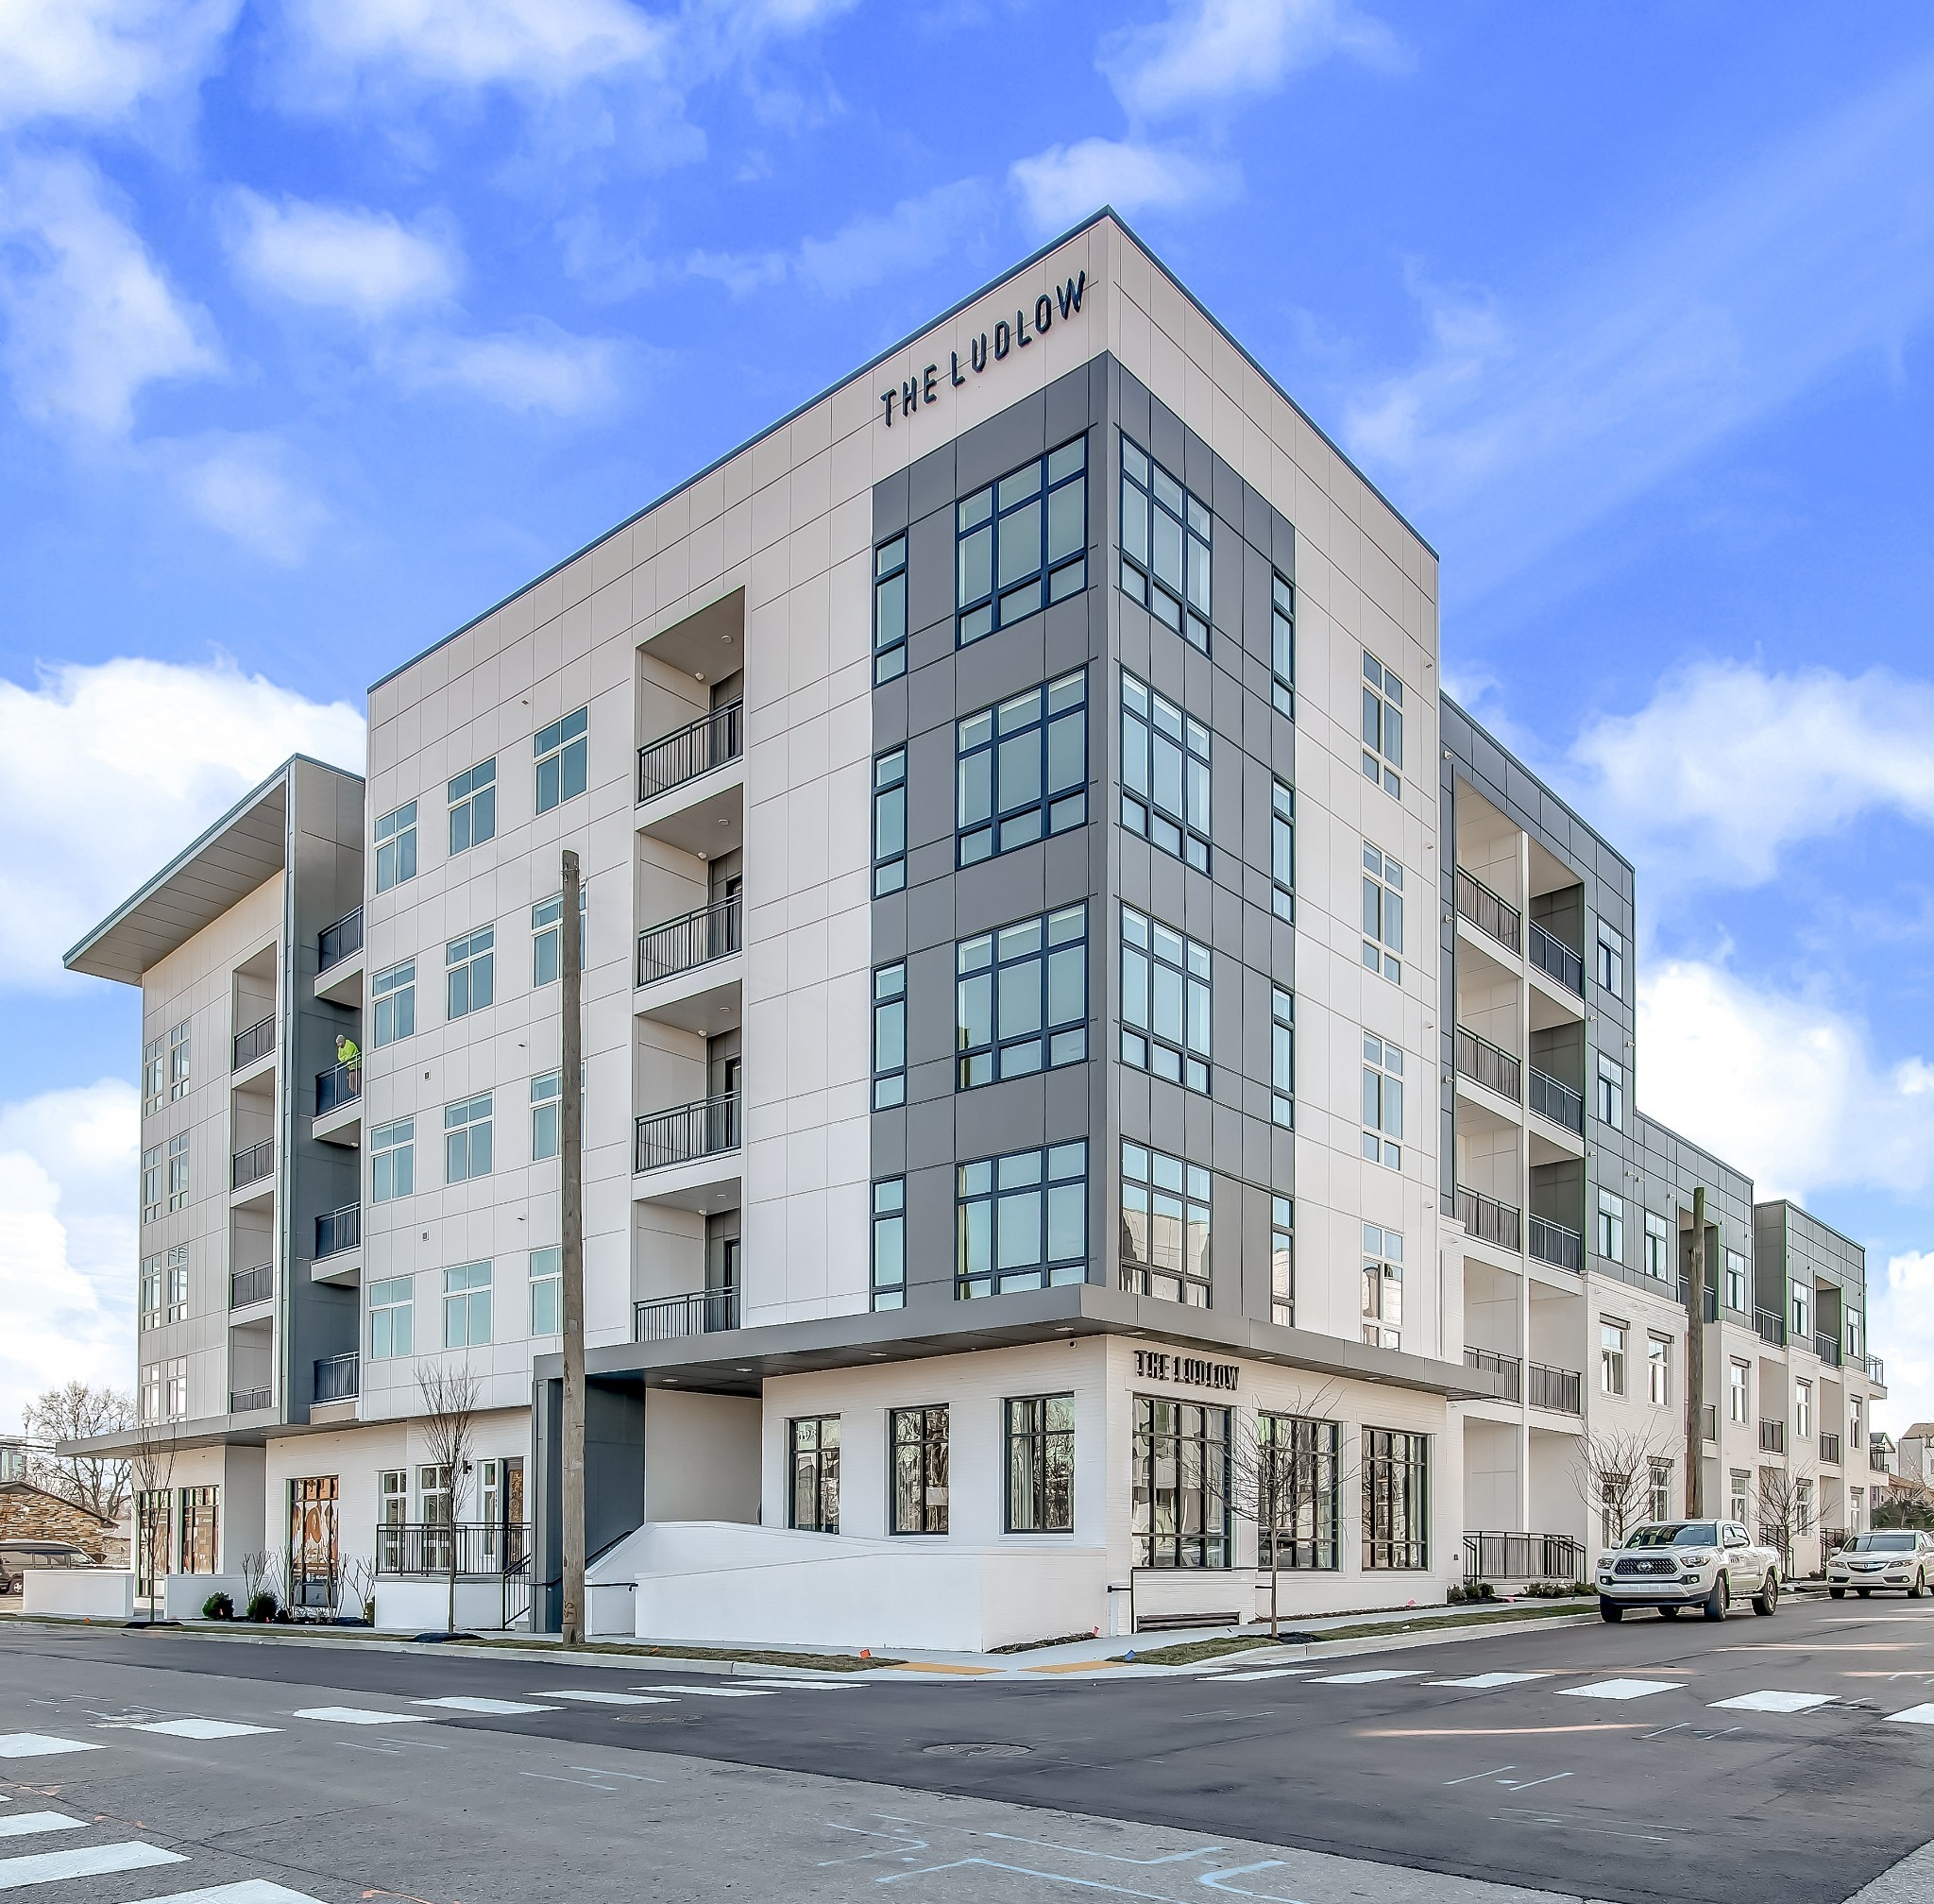 The Ludlow – 64 new construction residences. Studio, 1 & 2 bed floorplans. Sleek cabinetry, wood flooring + quartz countertops. Rooftop deck w amazing skyline views. WiFi thermostats, latch smart locks w/ Sonos speaker integration. Sales model open, building complete ready for occupancy!